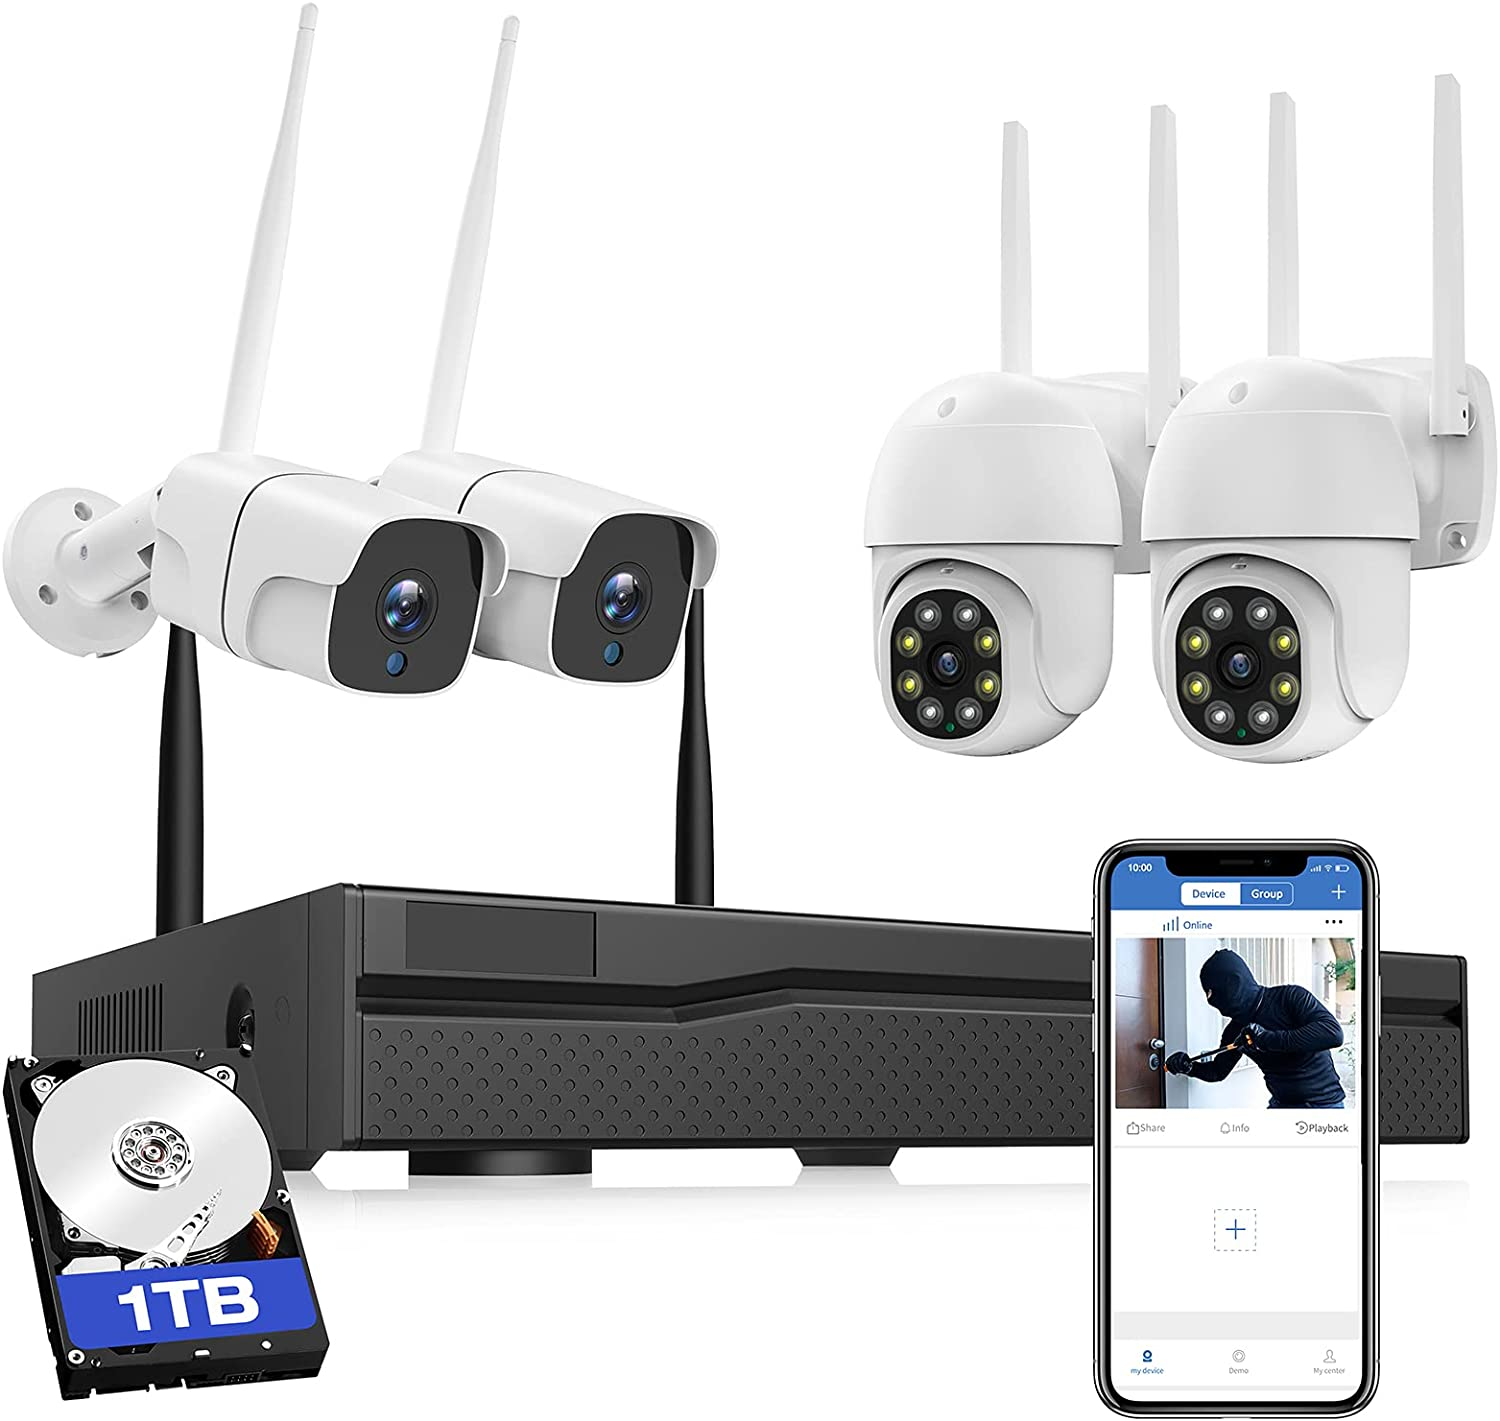 Security Camera System Wireless Outdoor, Pre-Installed 1TB Hard Drive WiFi Camera System for Home Monitoring, 4X 3MP CCTV Camera System with Night Vision, Motion Alert, Two-Way Audio, IP66 Waterproof